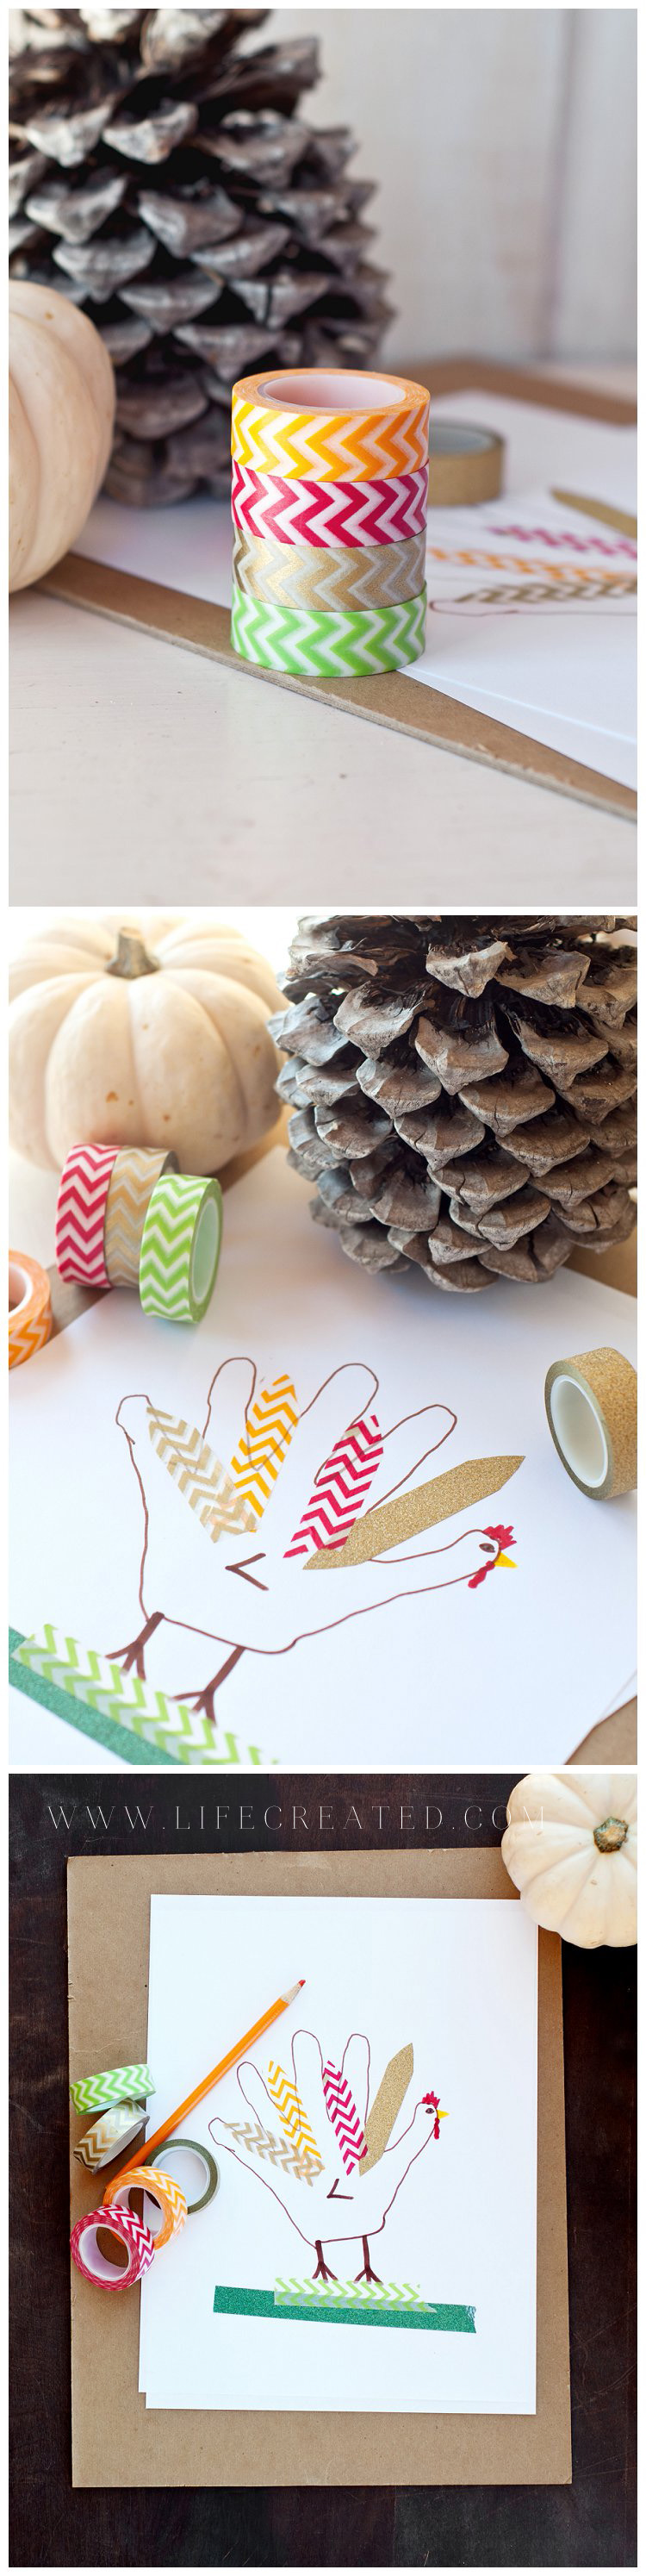 washi tape turkey handprint craft